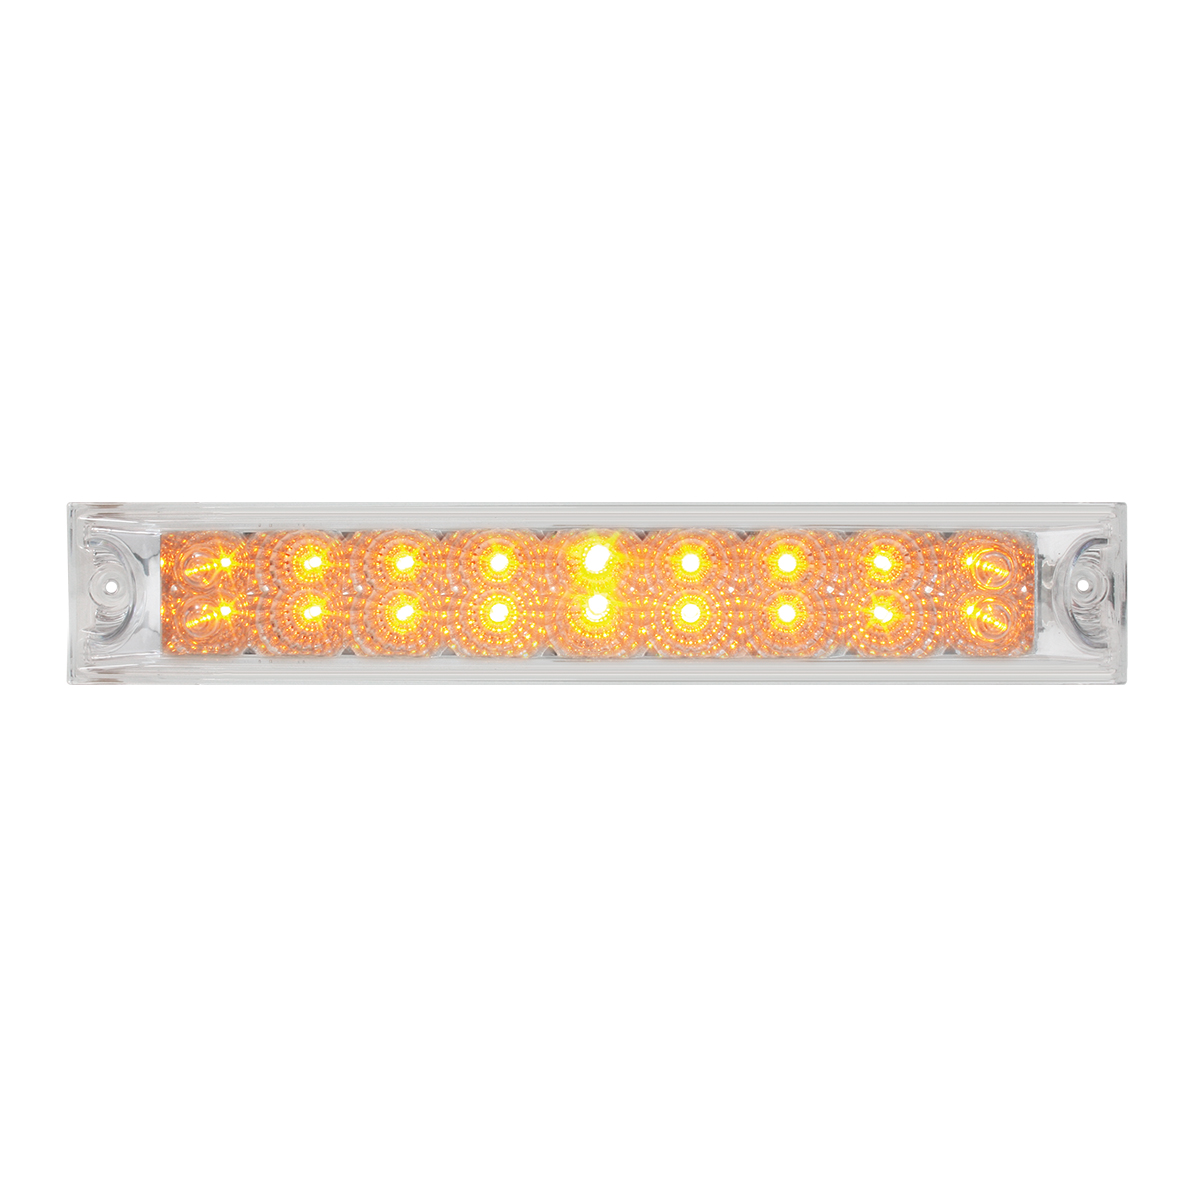 "76986 12"" Spyder LED Light Bar in Clear Lens"